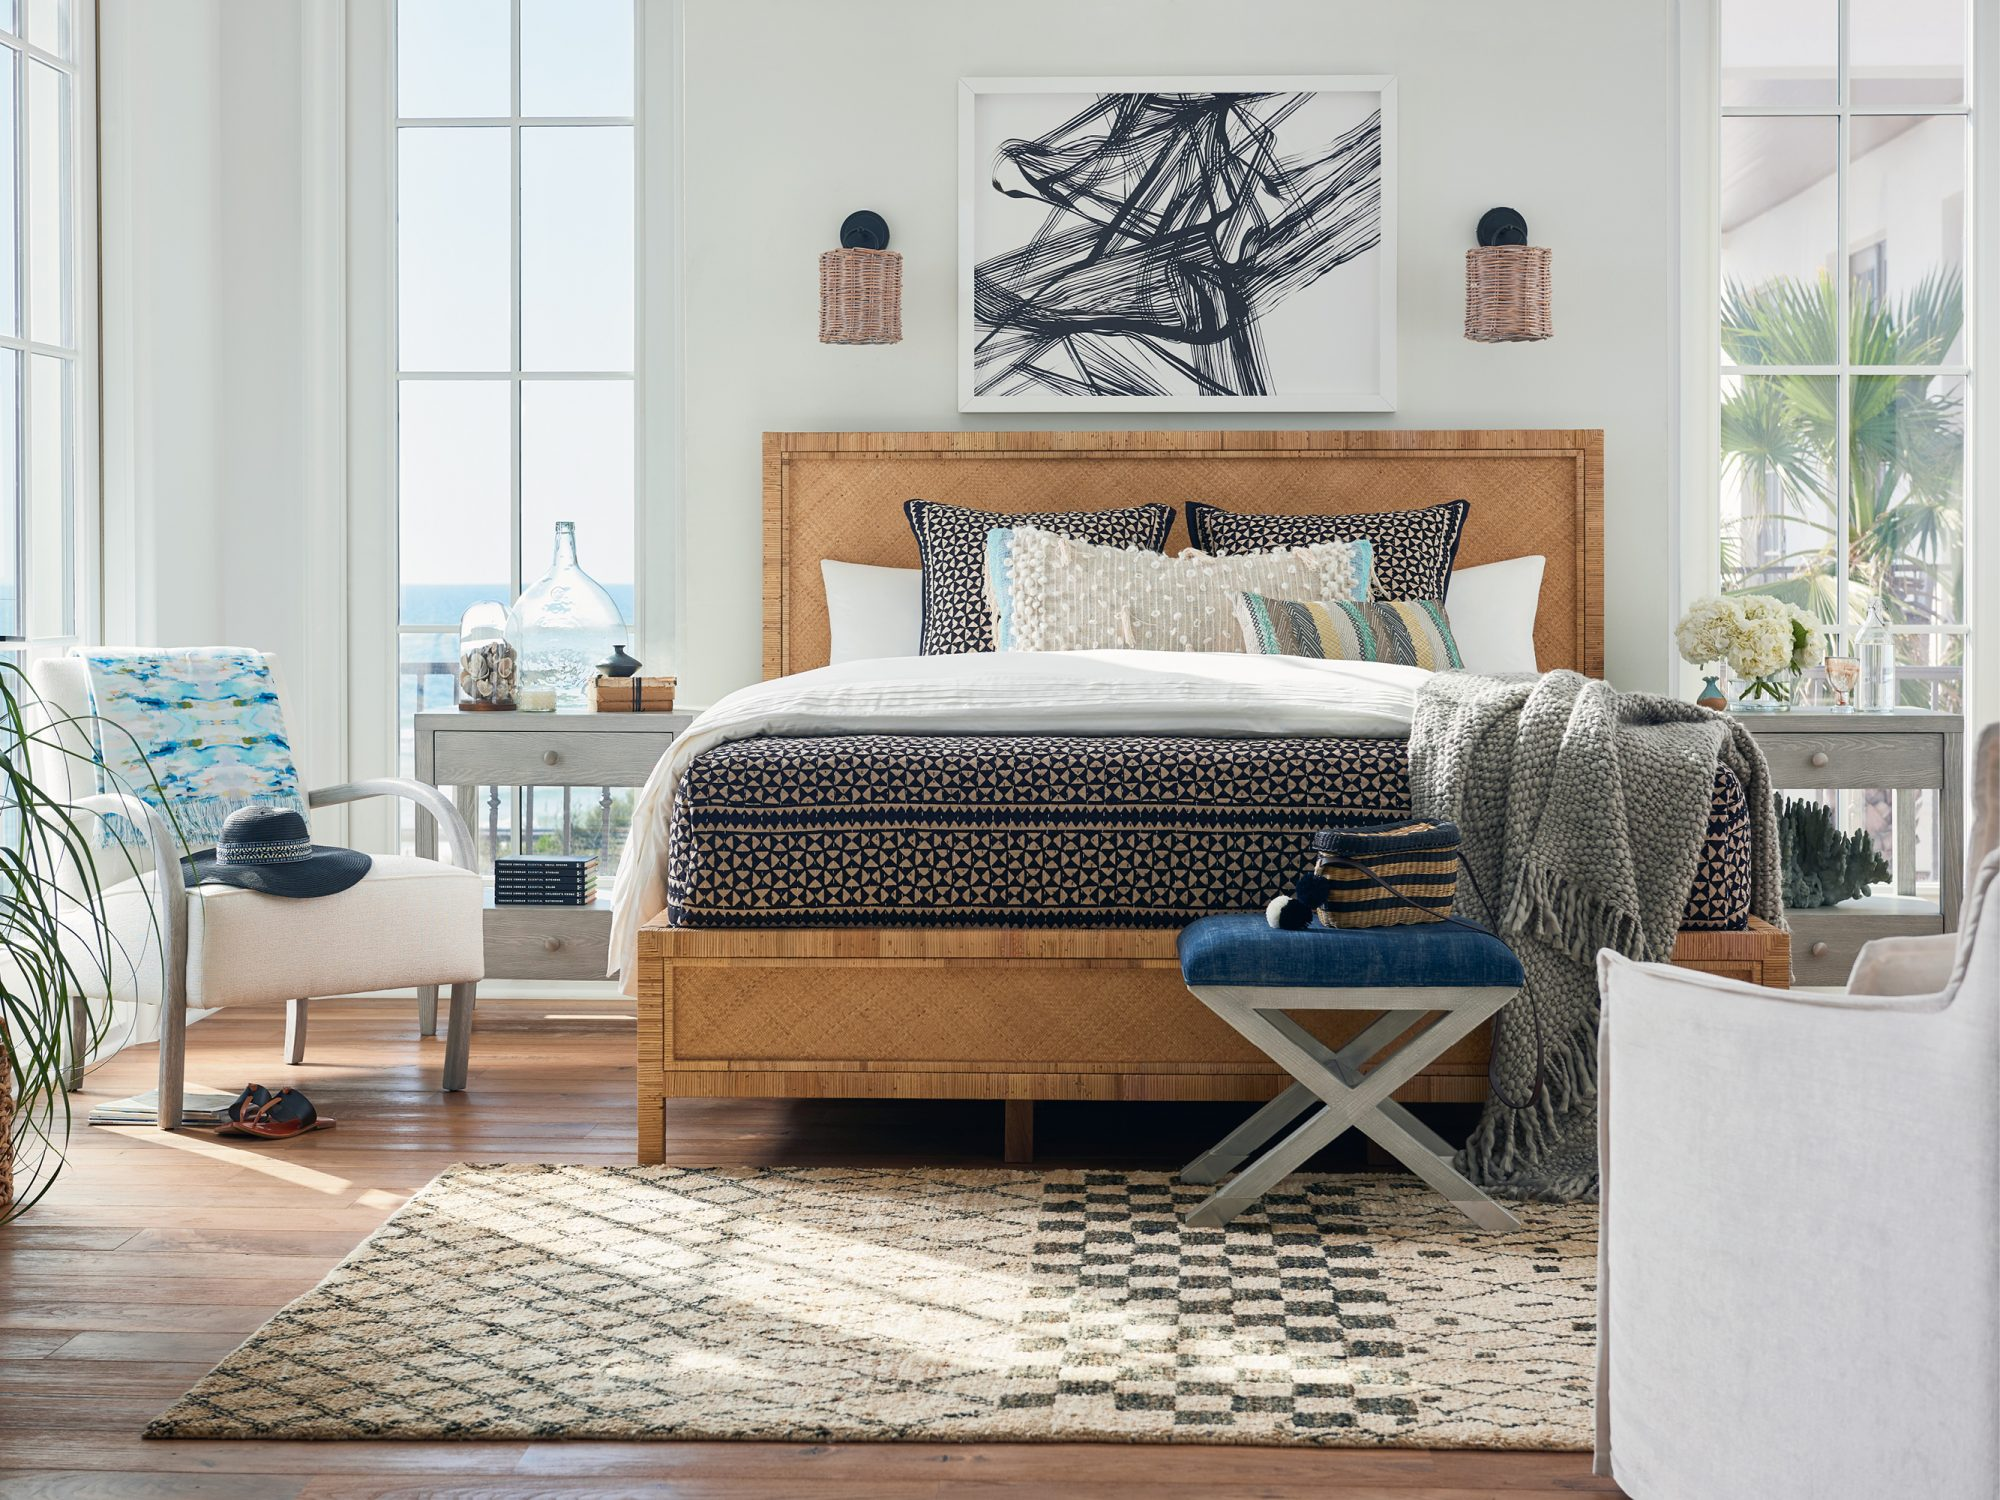 Coastal Living Has a New Furniture Line (You're Going to Want It All!)